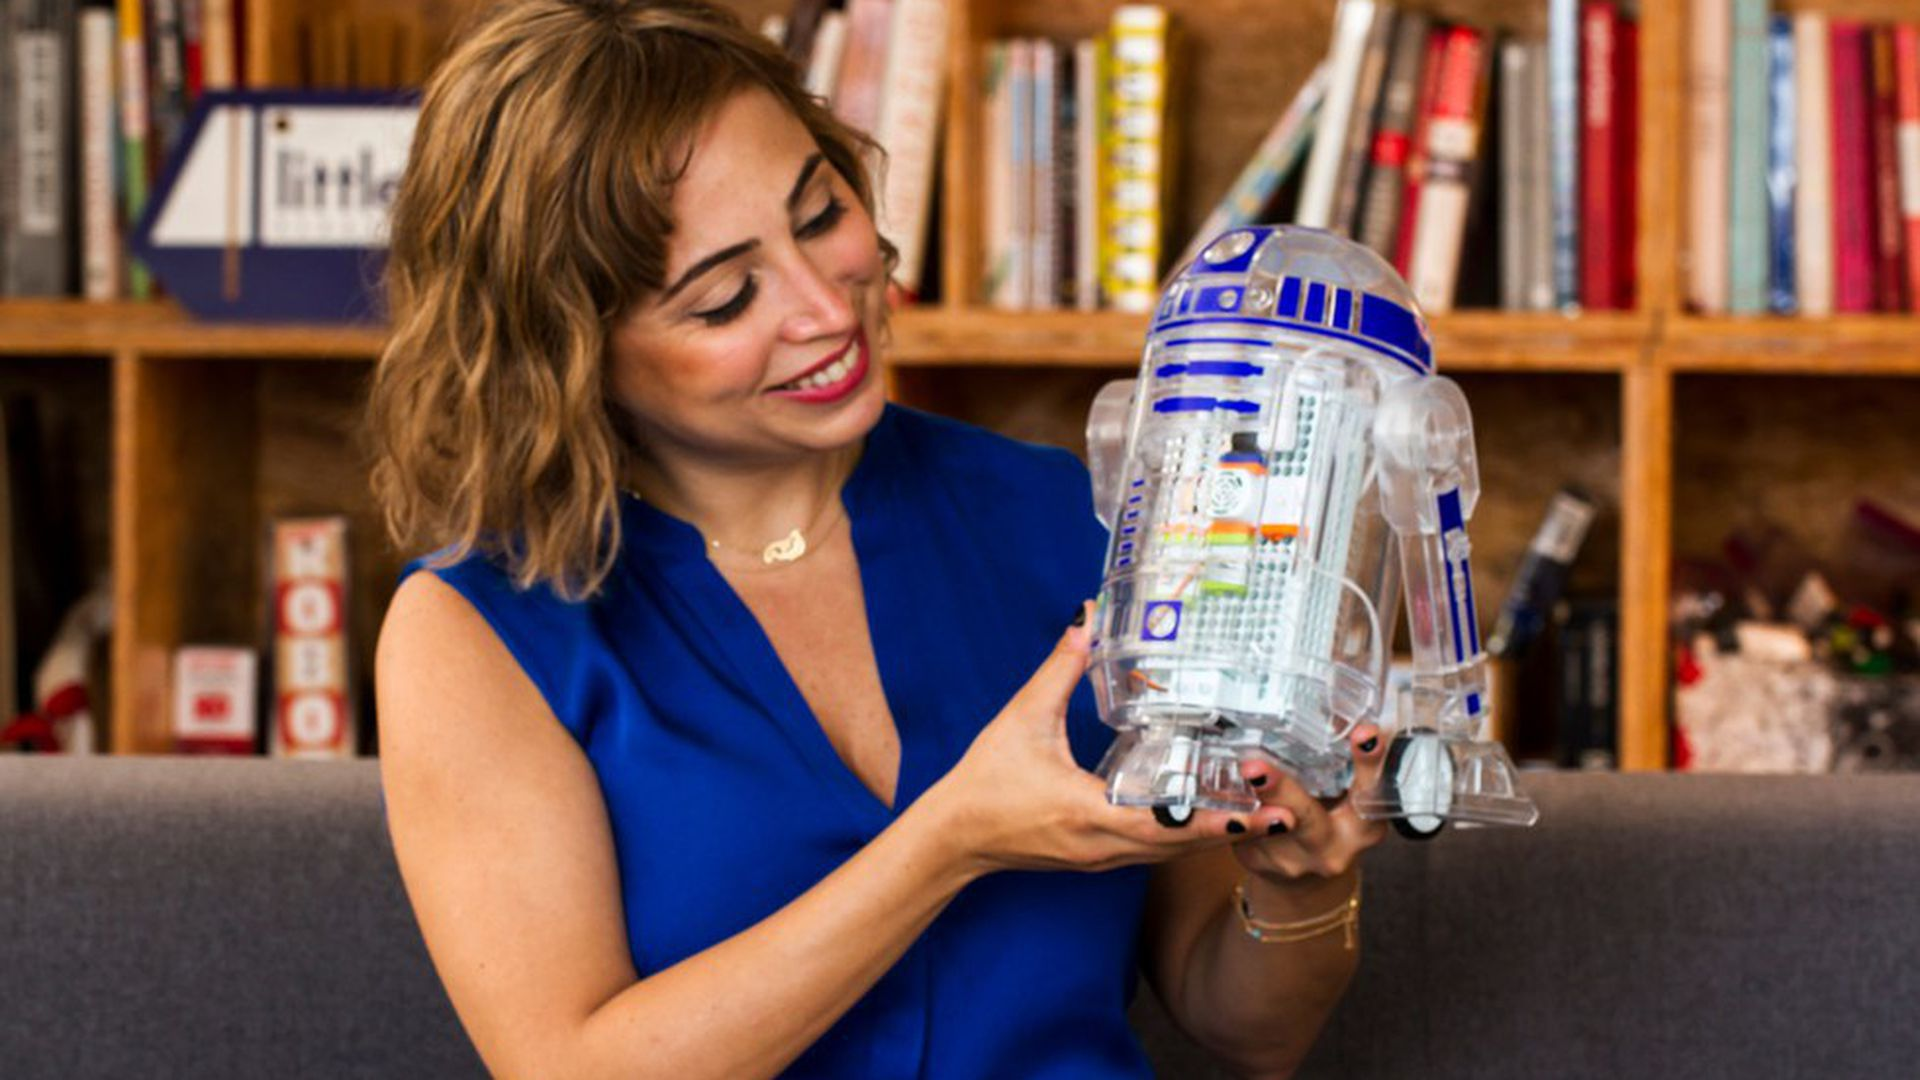 Ayah Bdeir. Photo: LittleBits